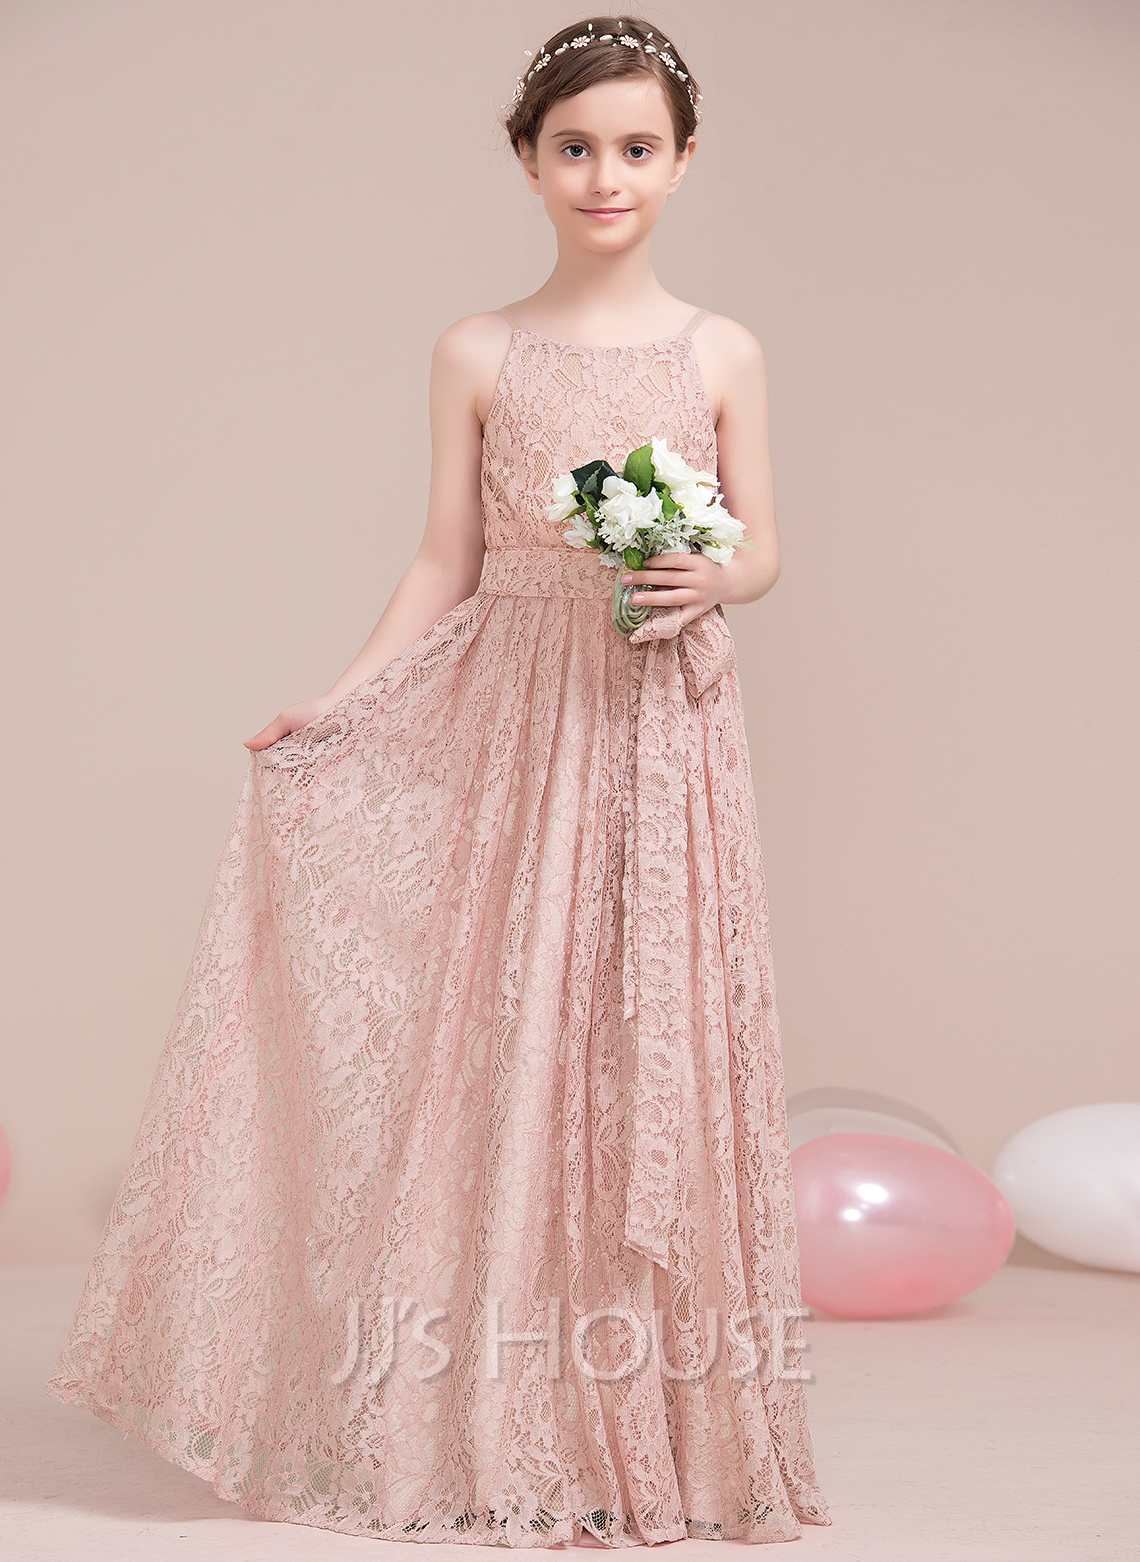 A-Line Scoop Neck Floor-Length Lace Junior Bridesmaid Dress With Bow(s)